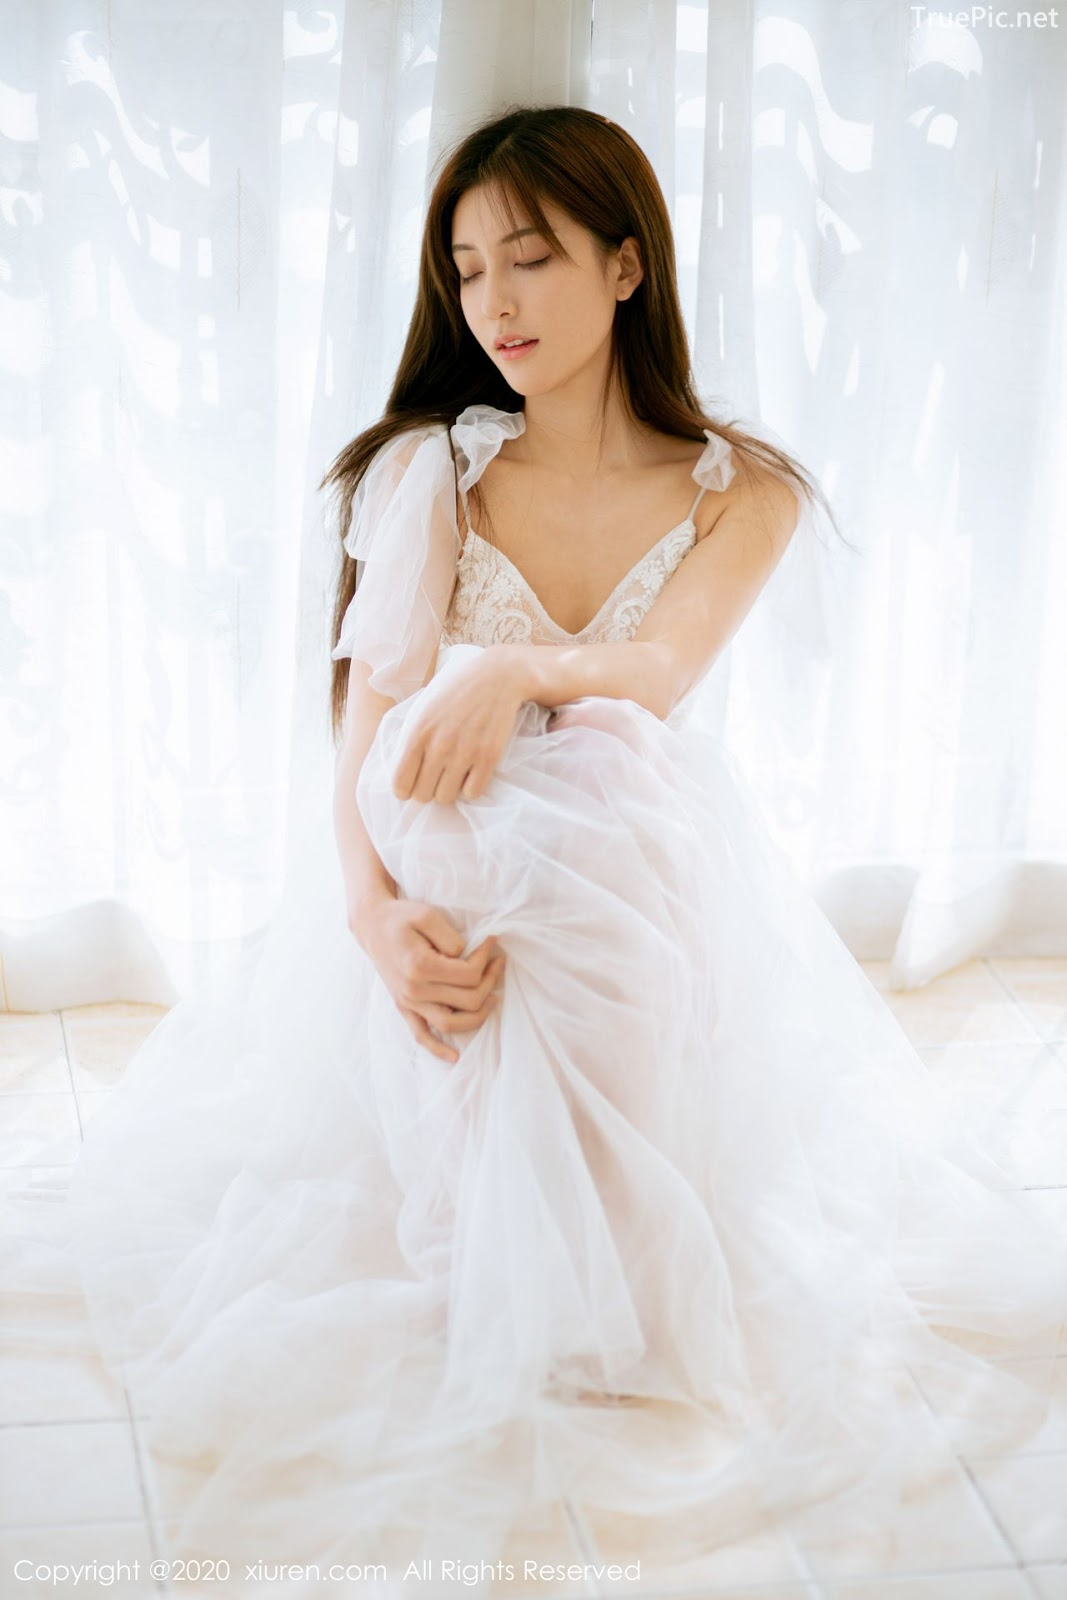 XIUREN No.1914 - Chinese model 林文文Yooki so Sexy with Transparent White Lace Dress - Picture 10